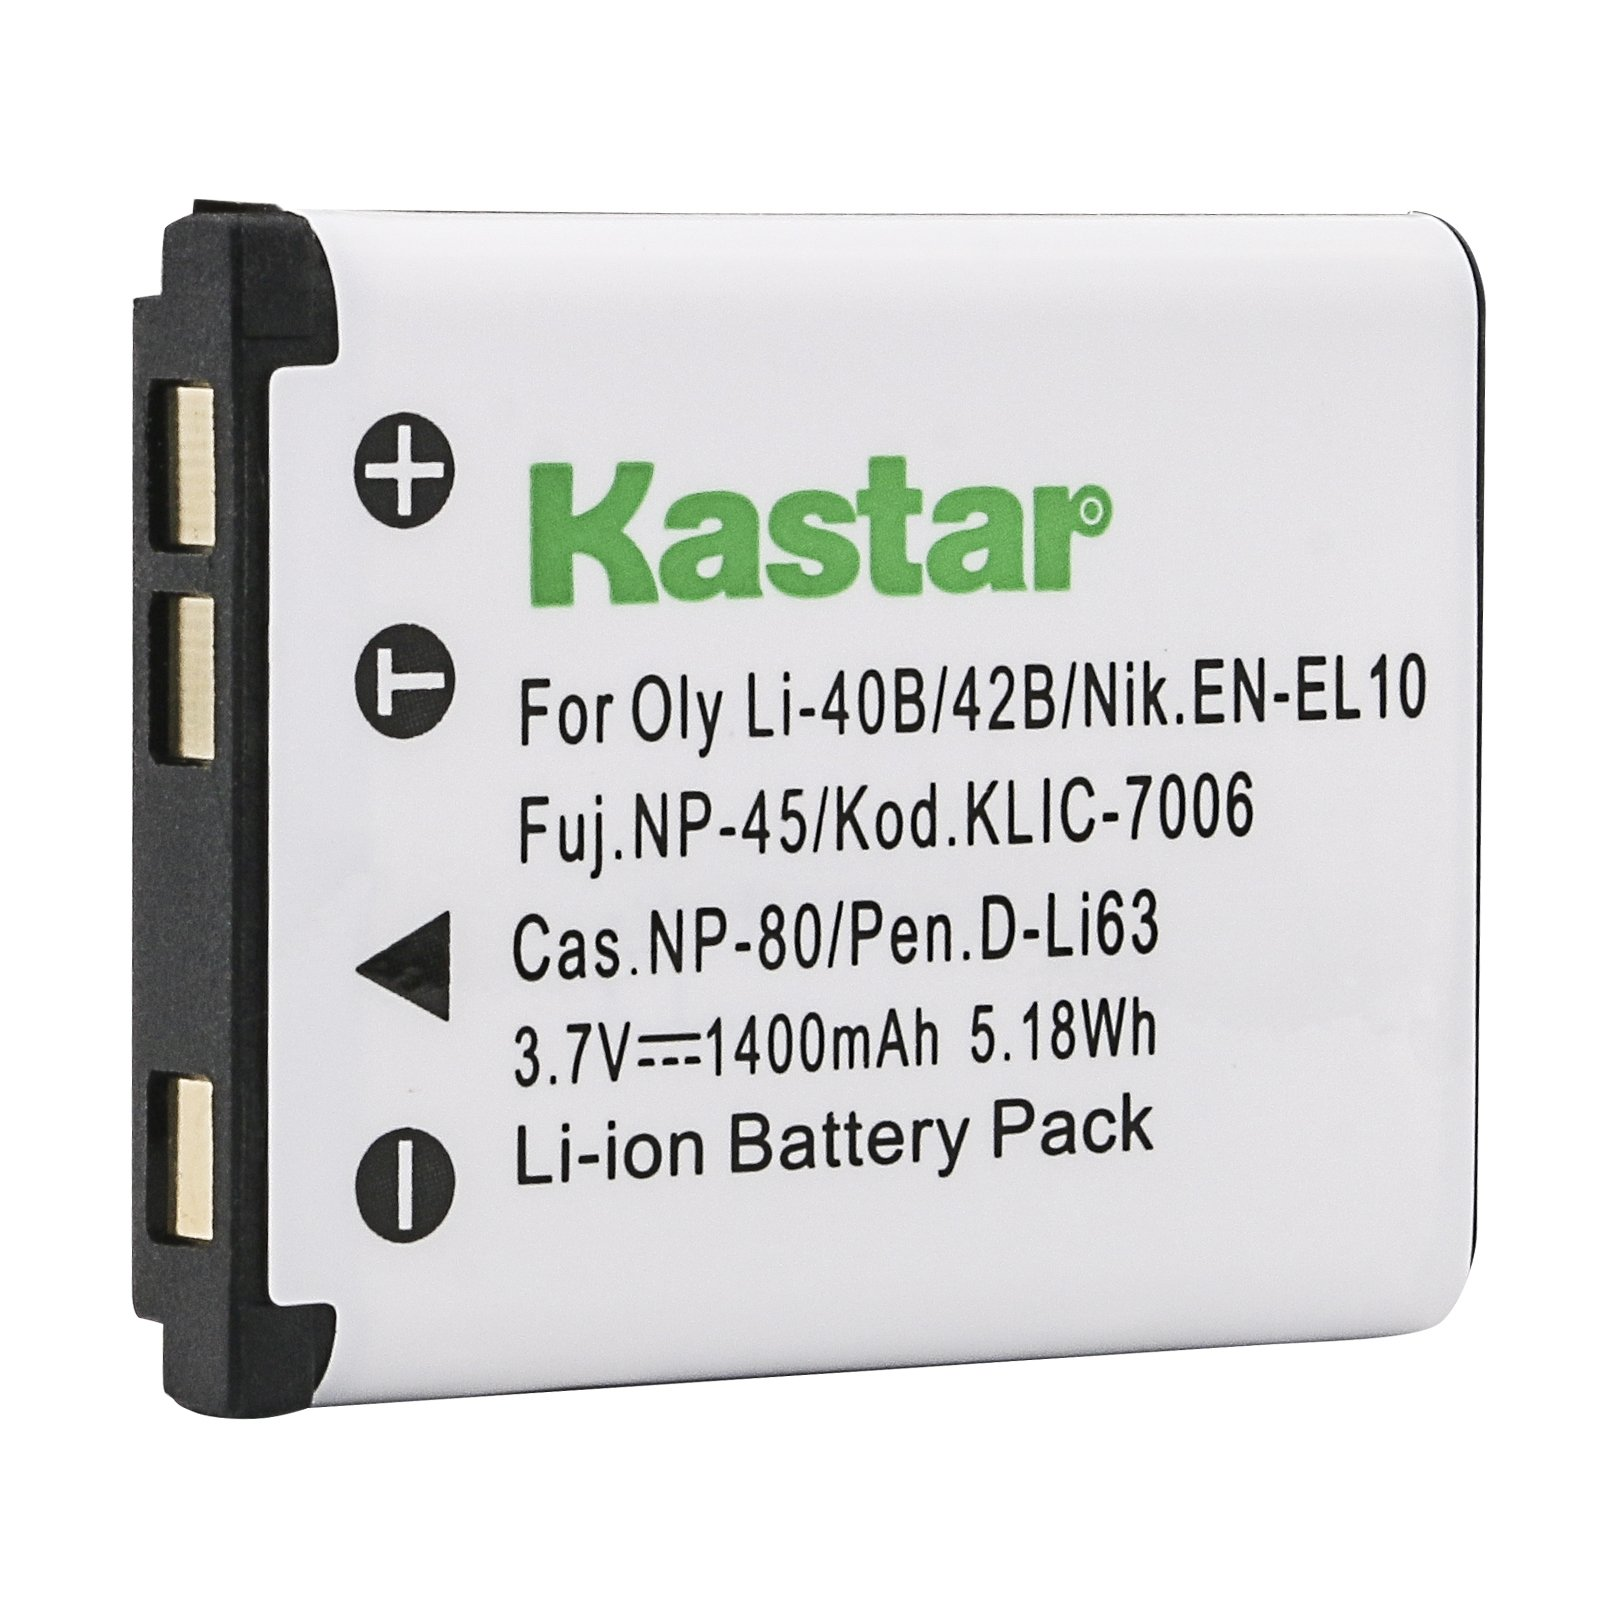 Kastar Battery for Kodak KLIC-7006 K7006 & EasyShare M22, M23, M200, M522, M530, M531, M532, M550, M552, M575, M577, M580, M583, M750, M873, M883, M5350, M5370, MD30, Mini, Touch digital camera